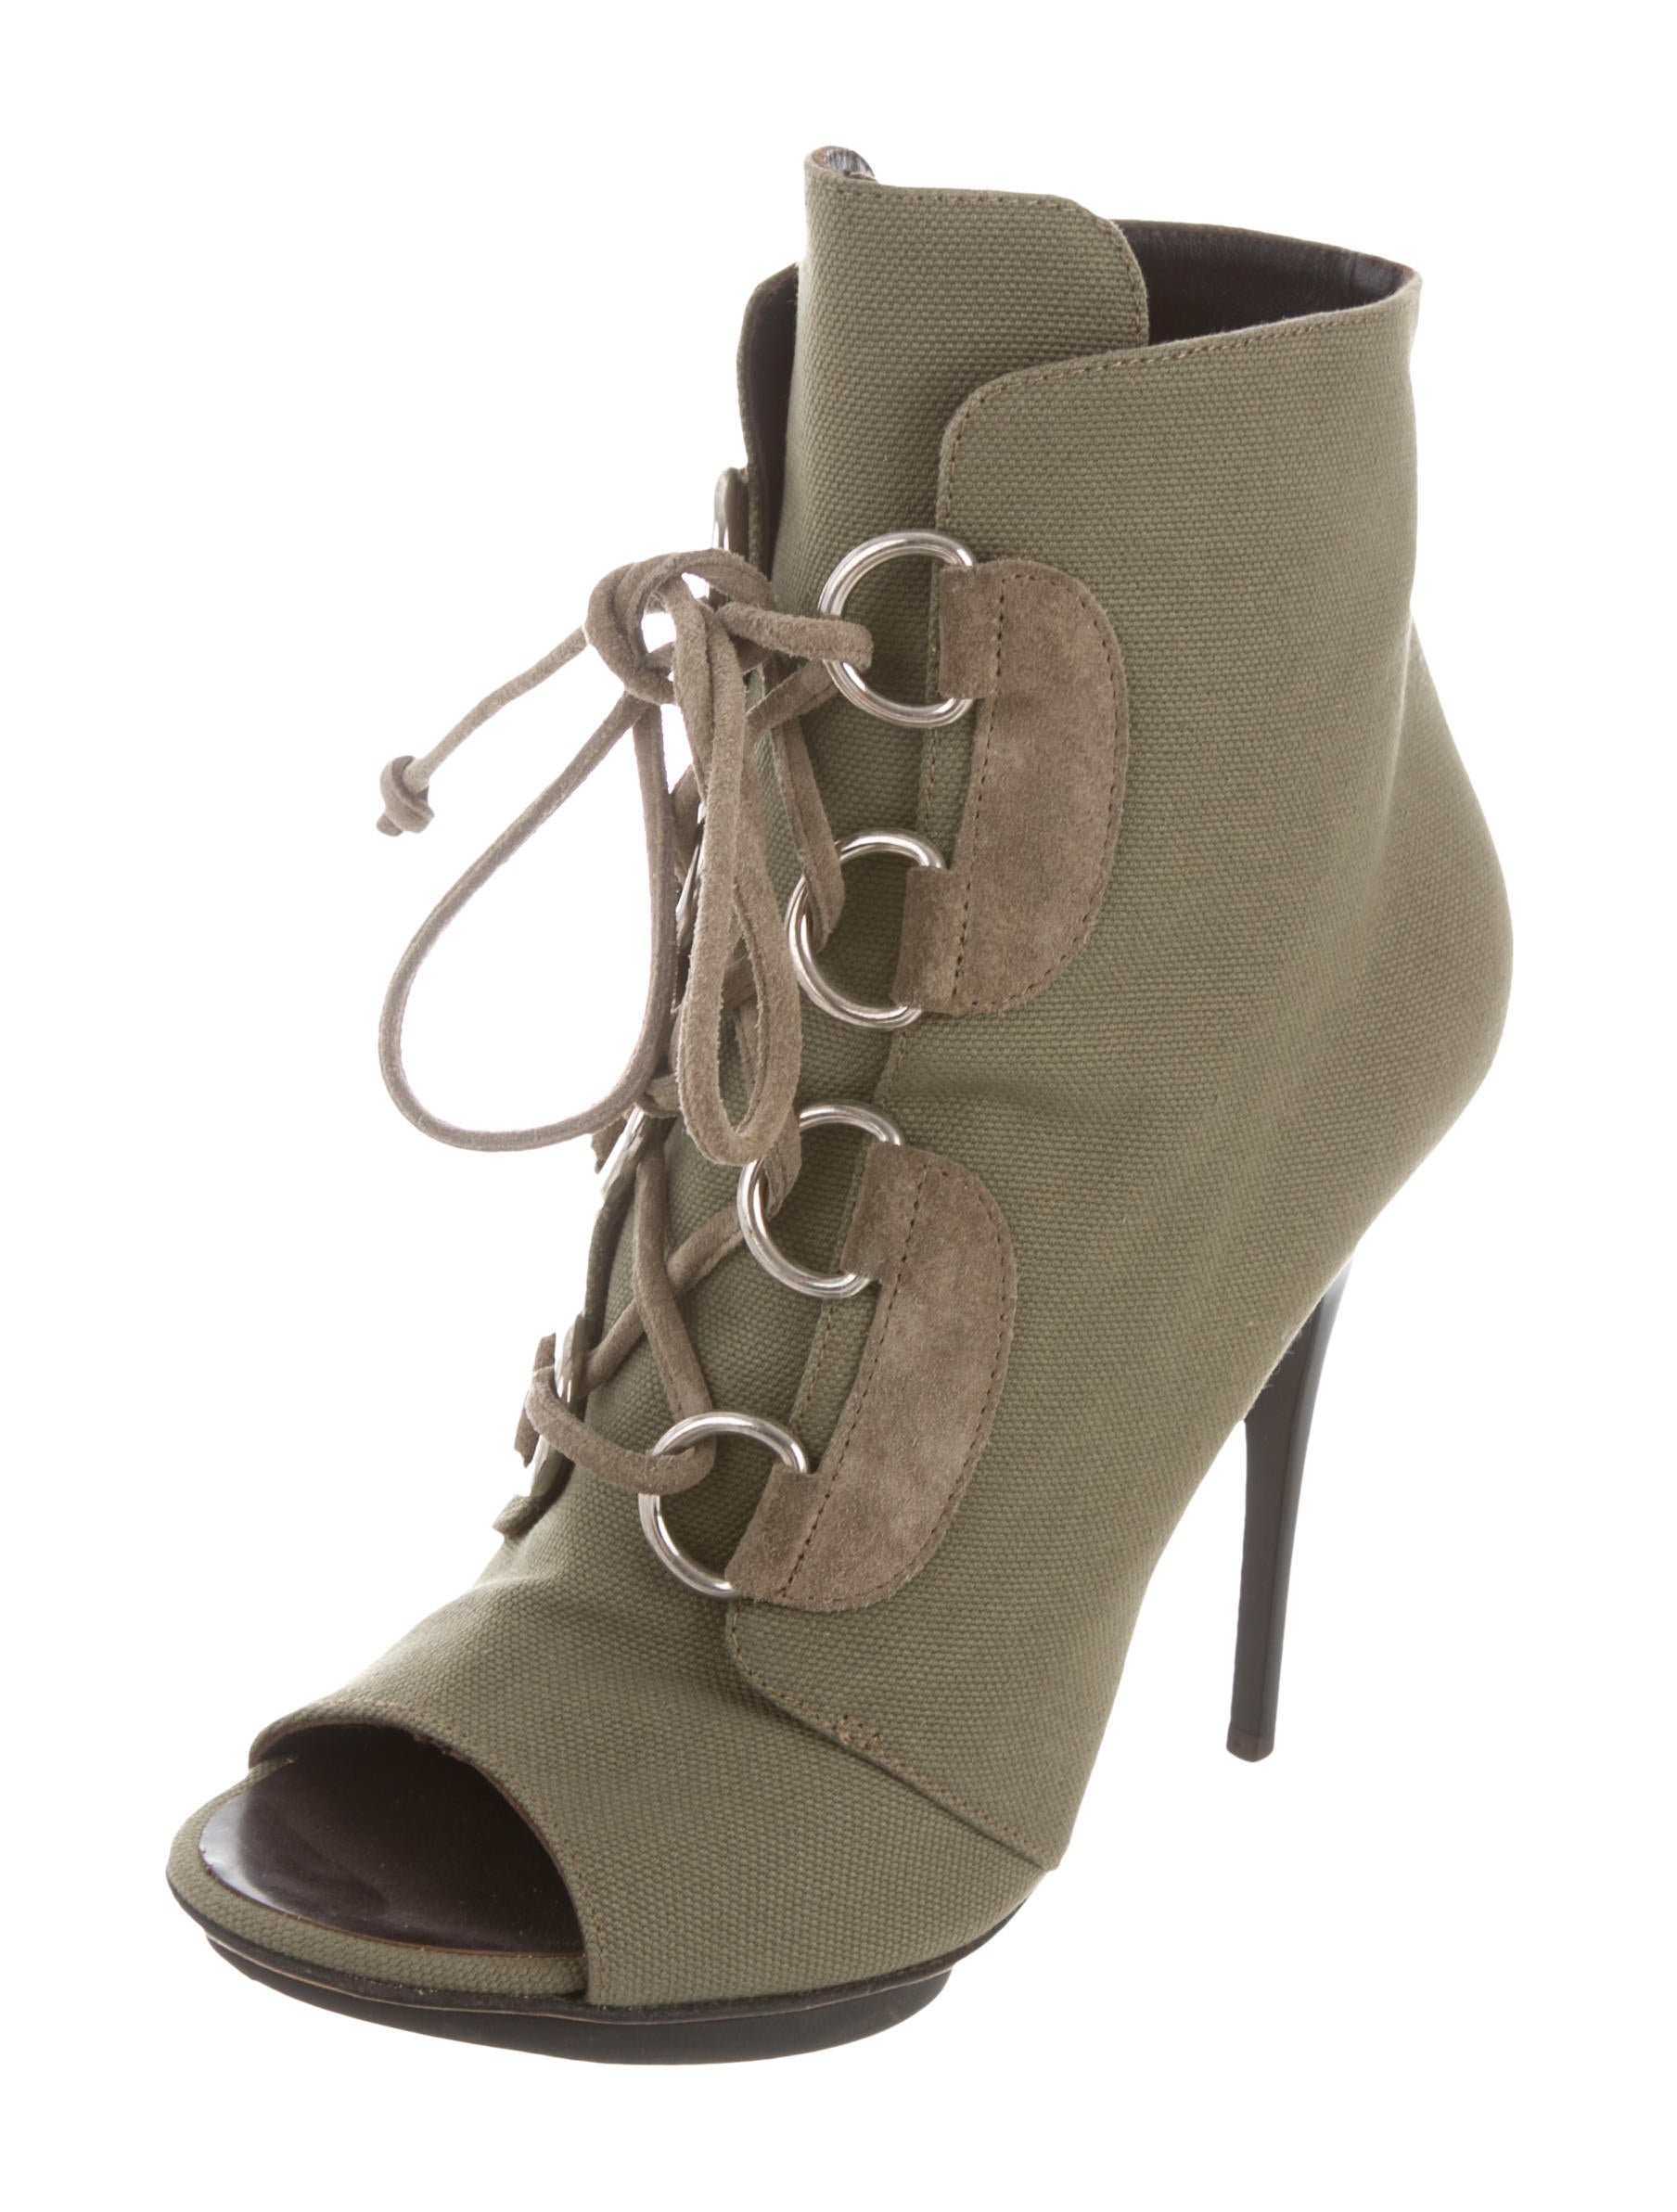 Giuseppe Zanotti Canvas Peep-Toe Booties sale classic sneakernews cheap price discount with paypal siDEWayG